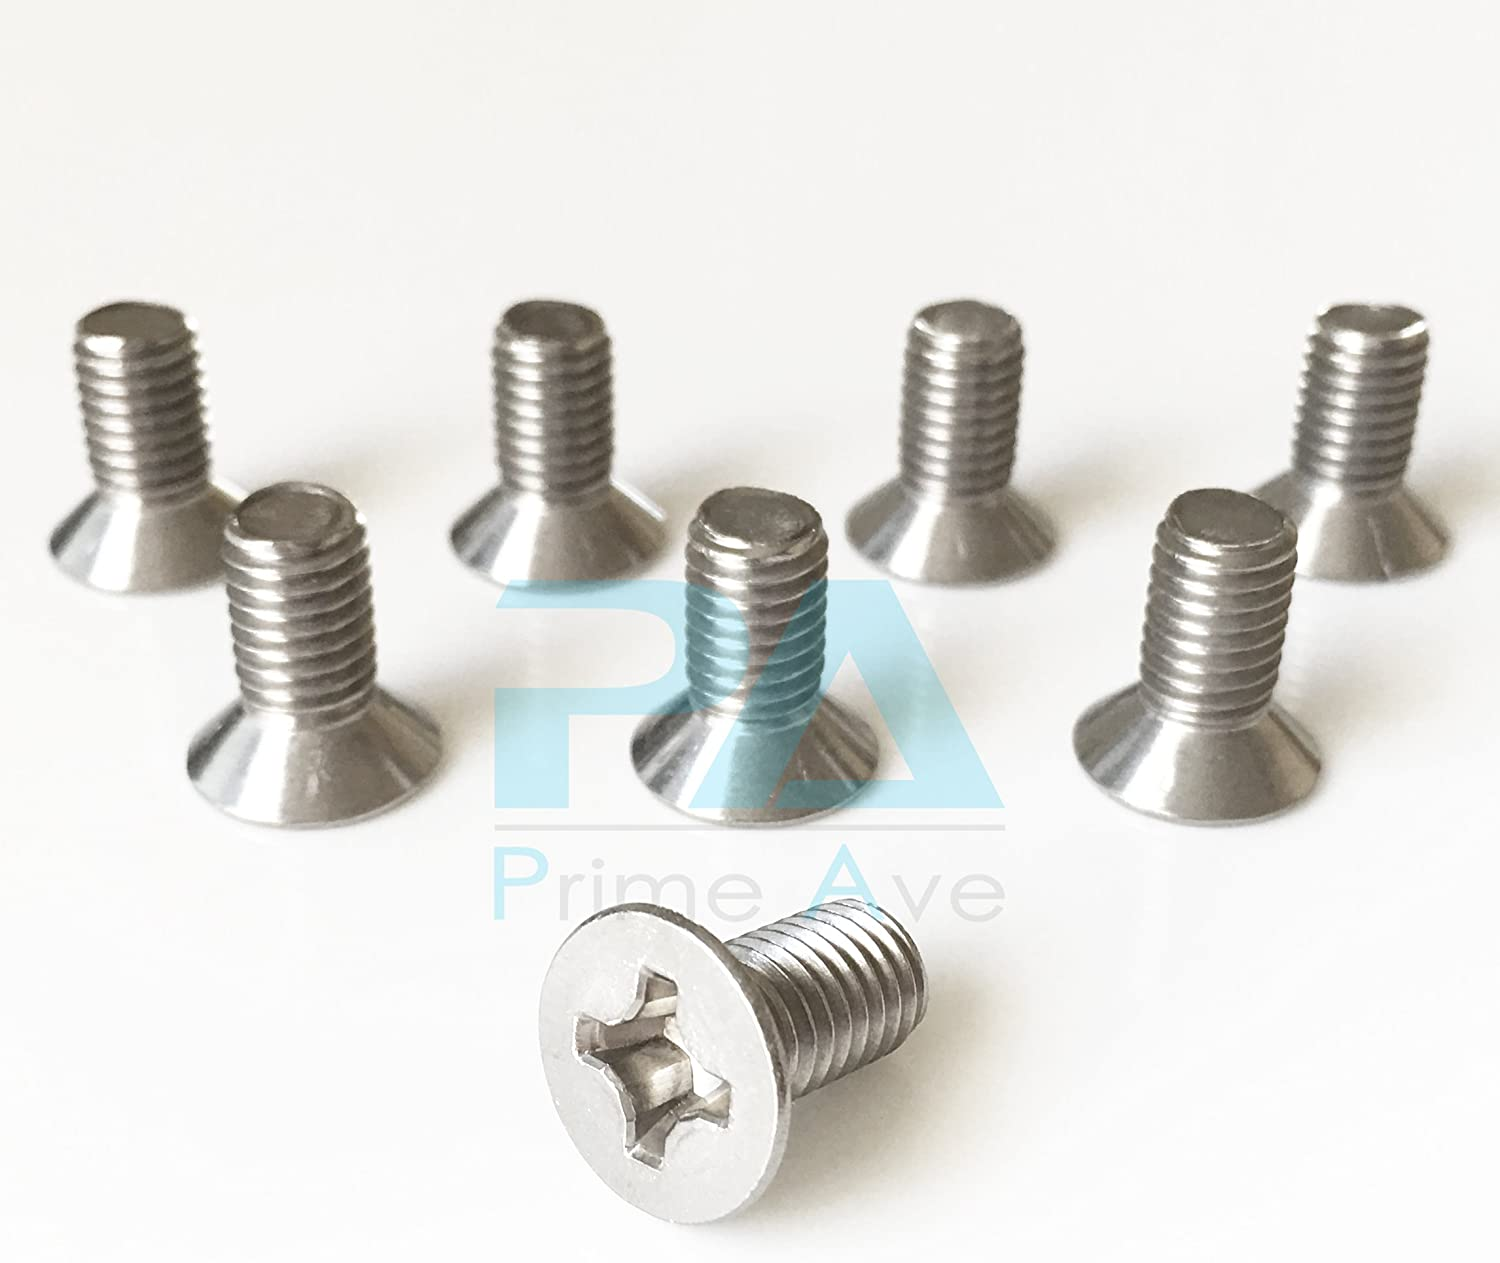 Prime Ave Stainless gift Steel Brake Re Surprise price Compatible Screws Rotor Disc